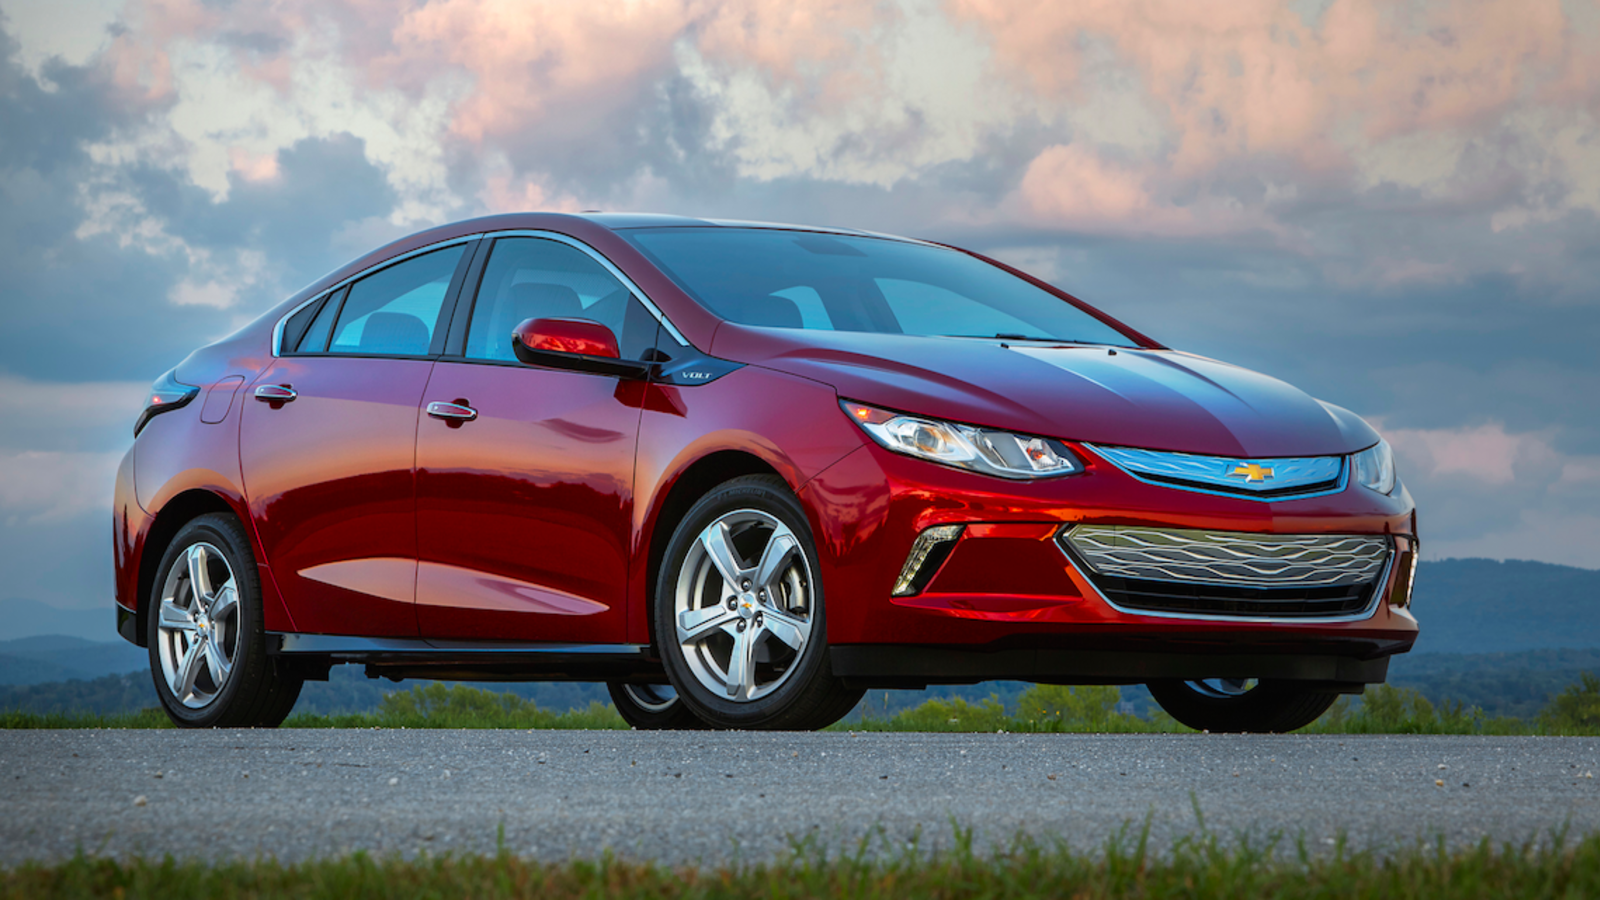 Dead Chevrolet Volt Updated Chevrolet Volt Chevrolet Best